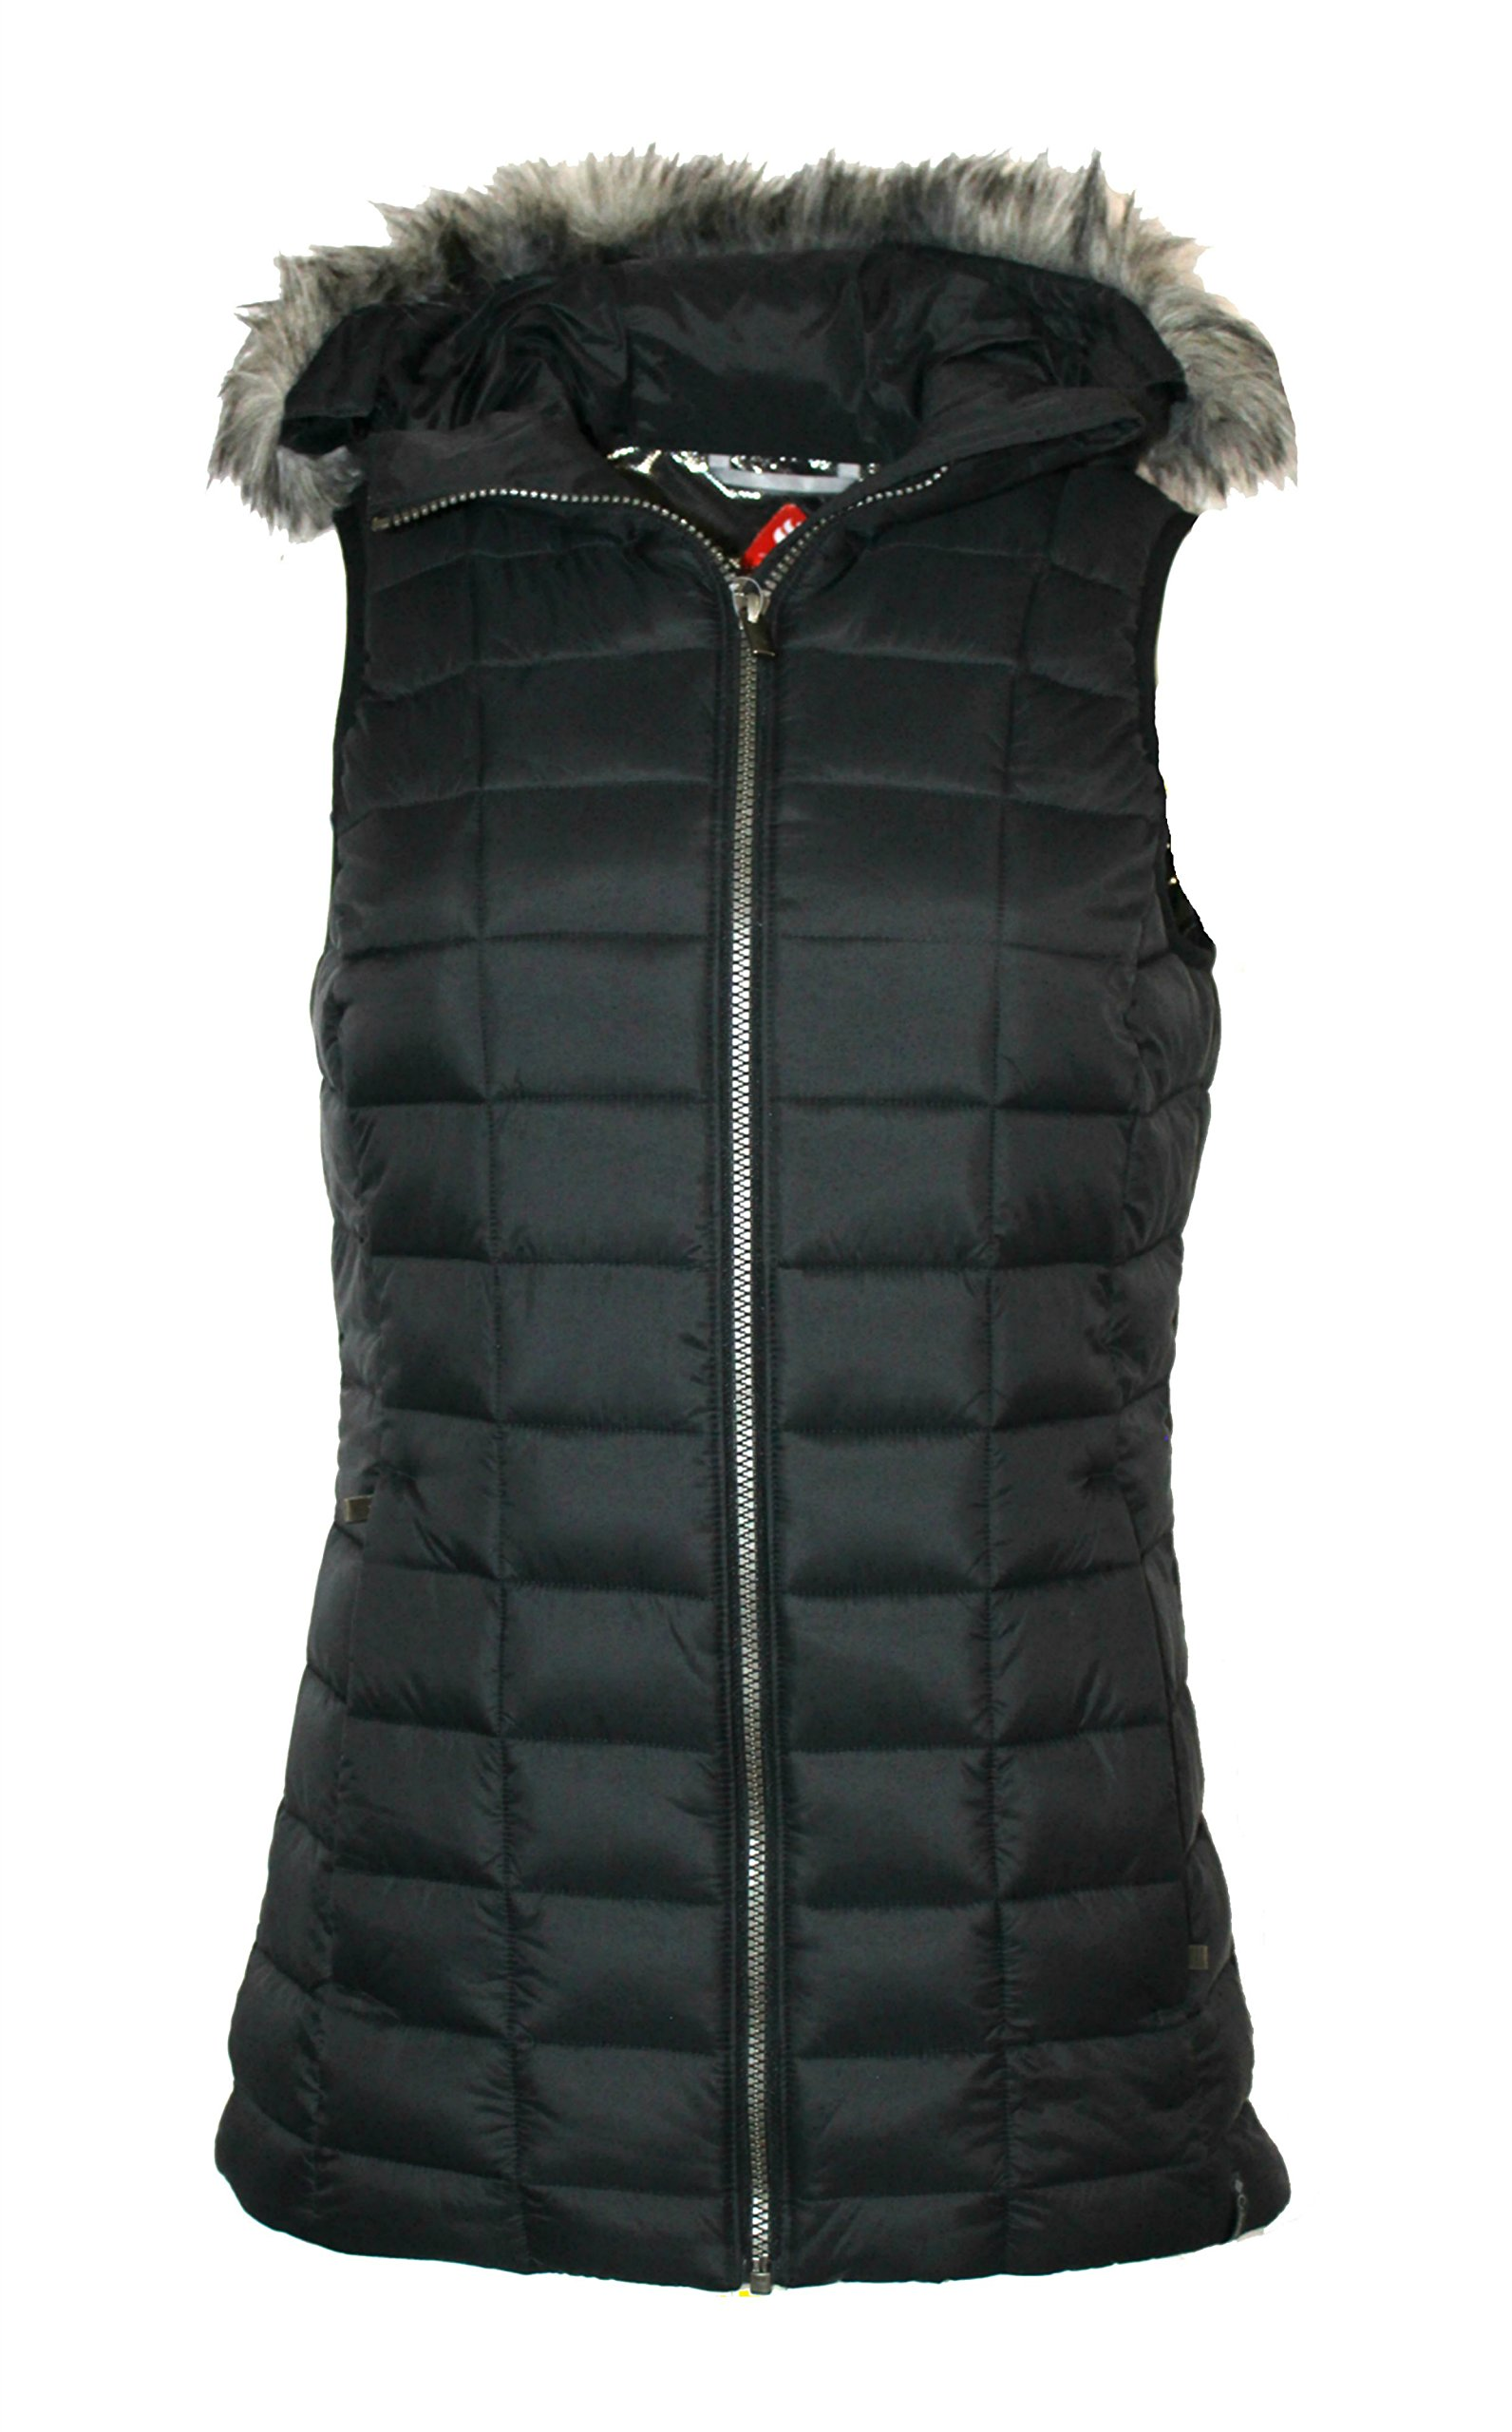 Columbia Women's Backcountry Blizzard Omni Heat Hooded Puffer Vest (Black, XL) by Columbia